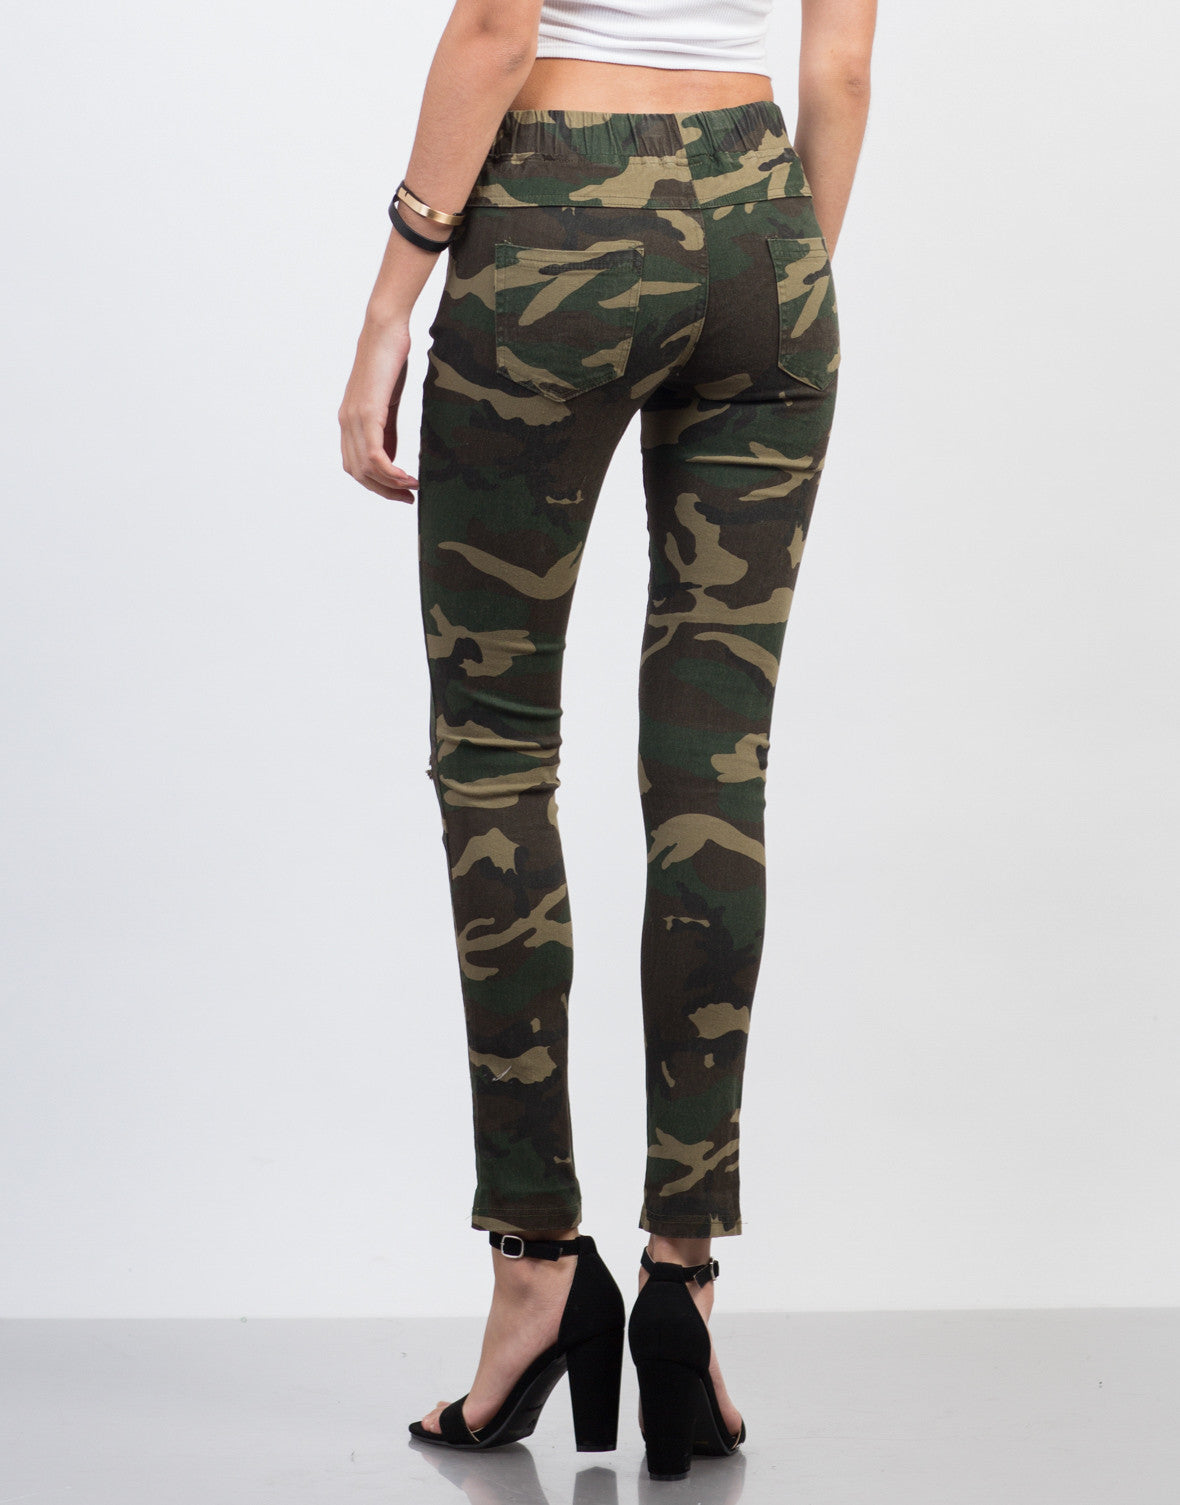 Back View of Ripped Knees Camo Pants